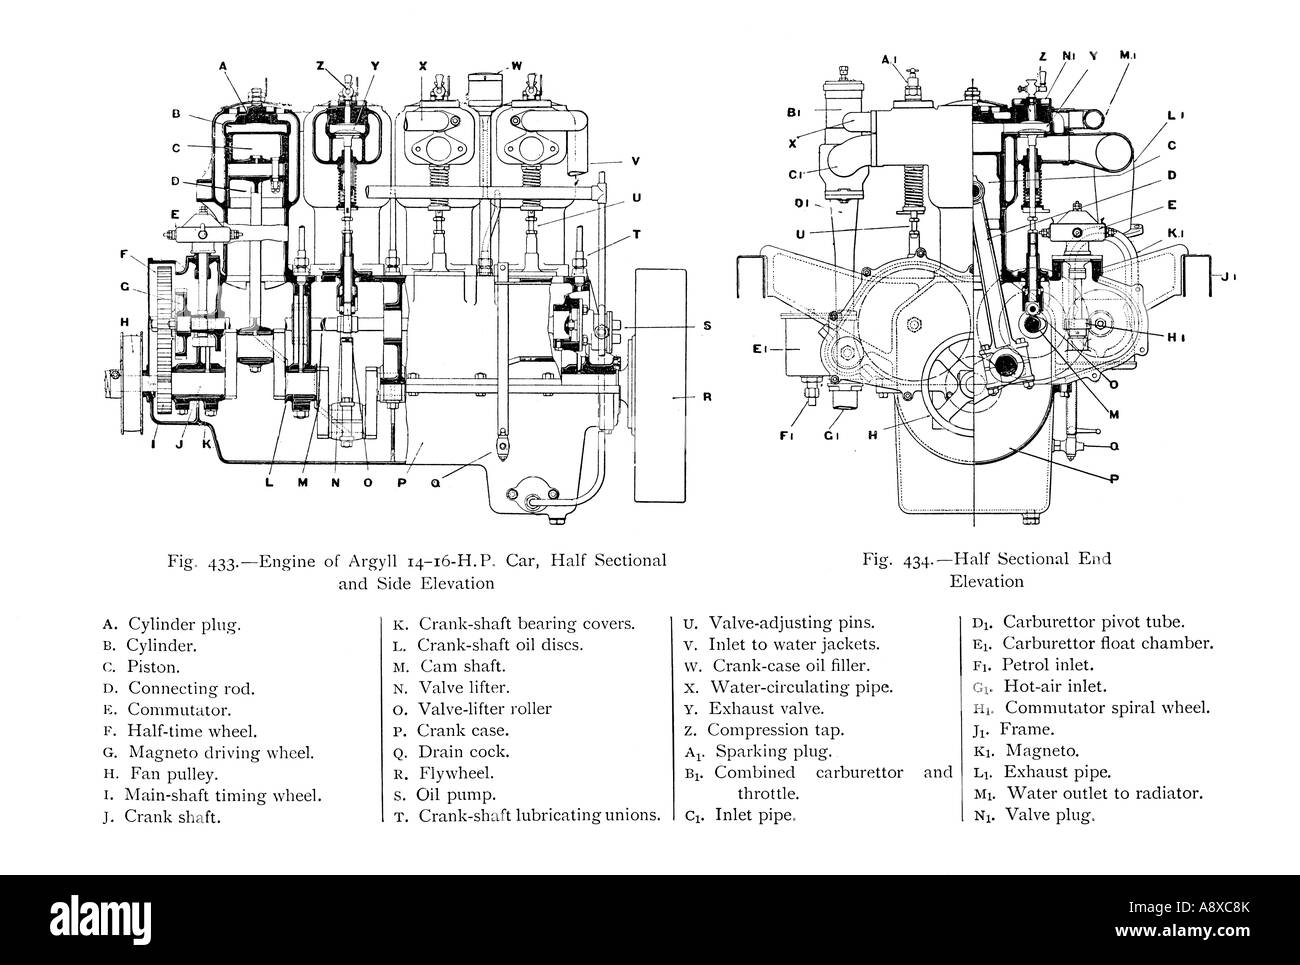 Diagram Of 14 16 Horse Power Argyll Four Cyliner Petrol